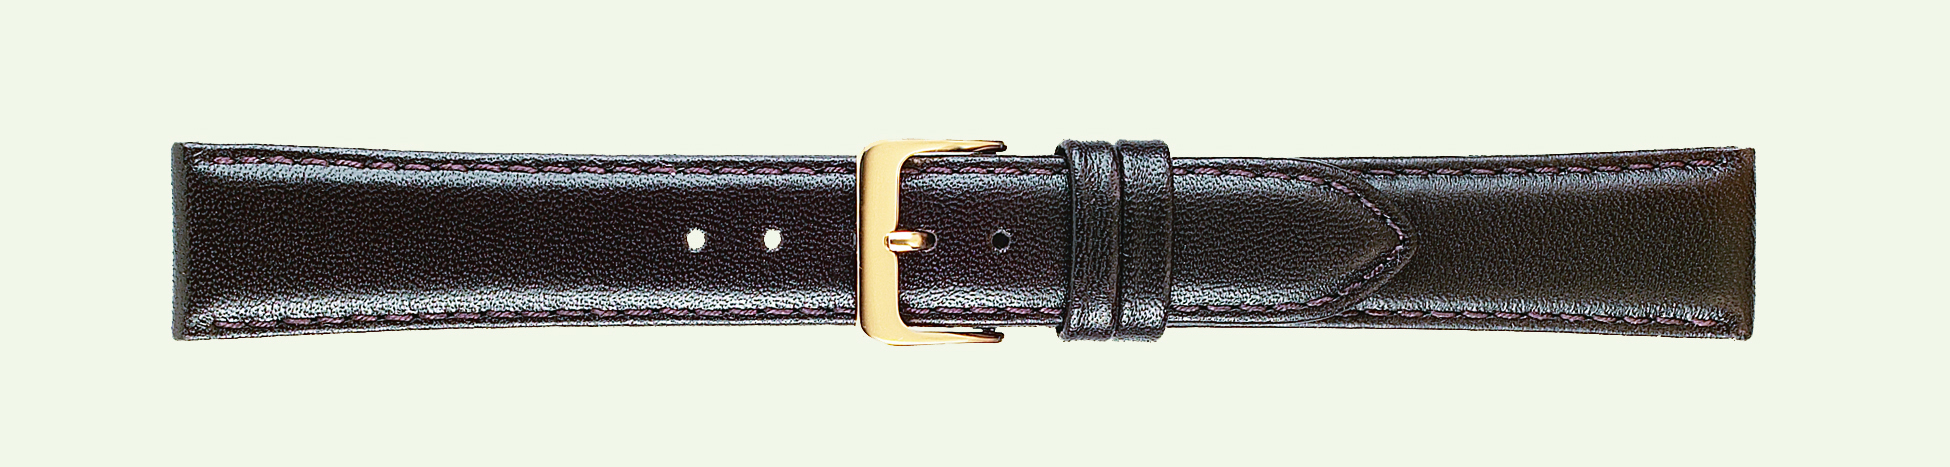 19MM Leather Band Brown Classic Calf-0